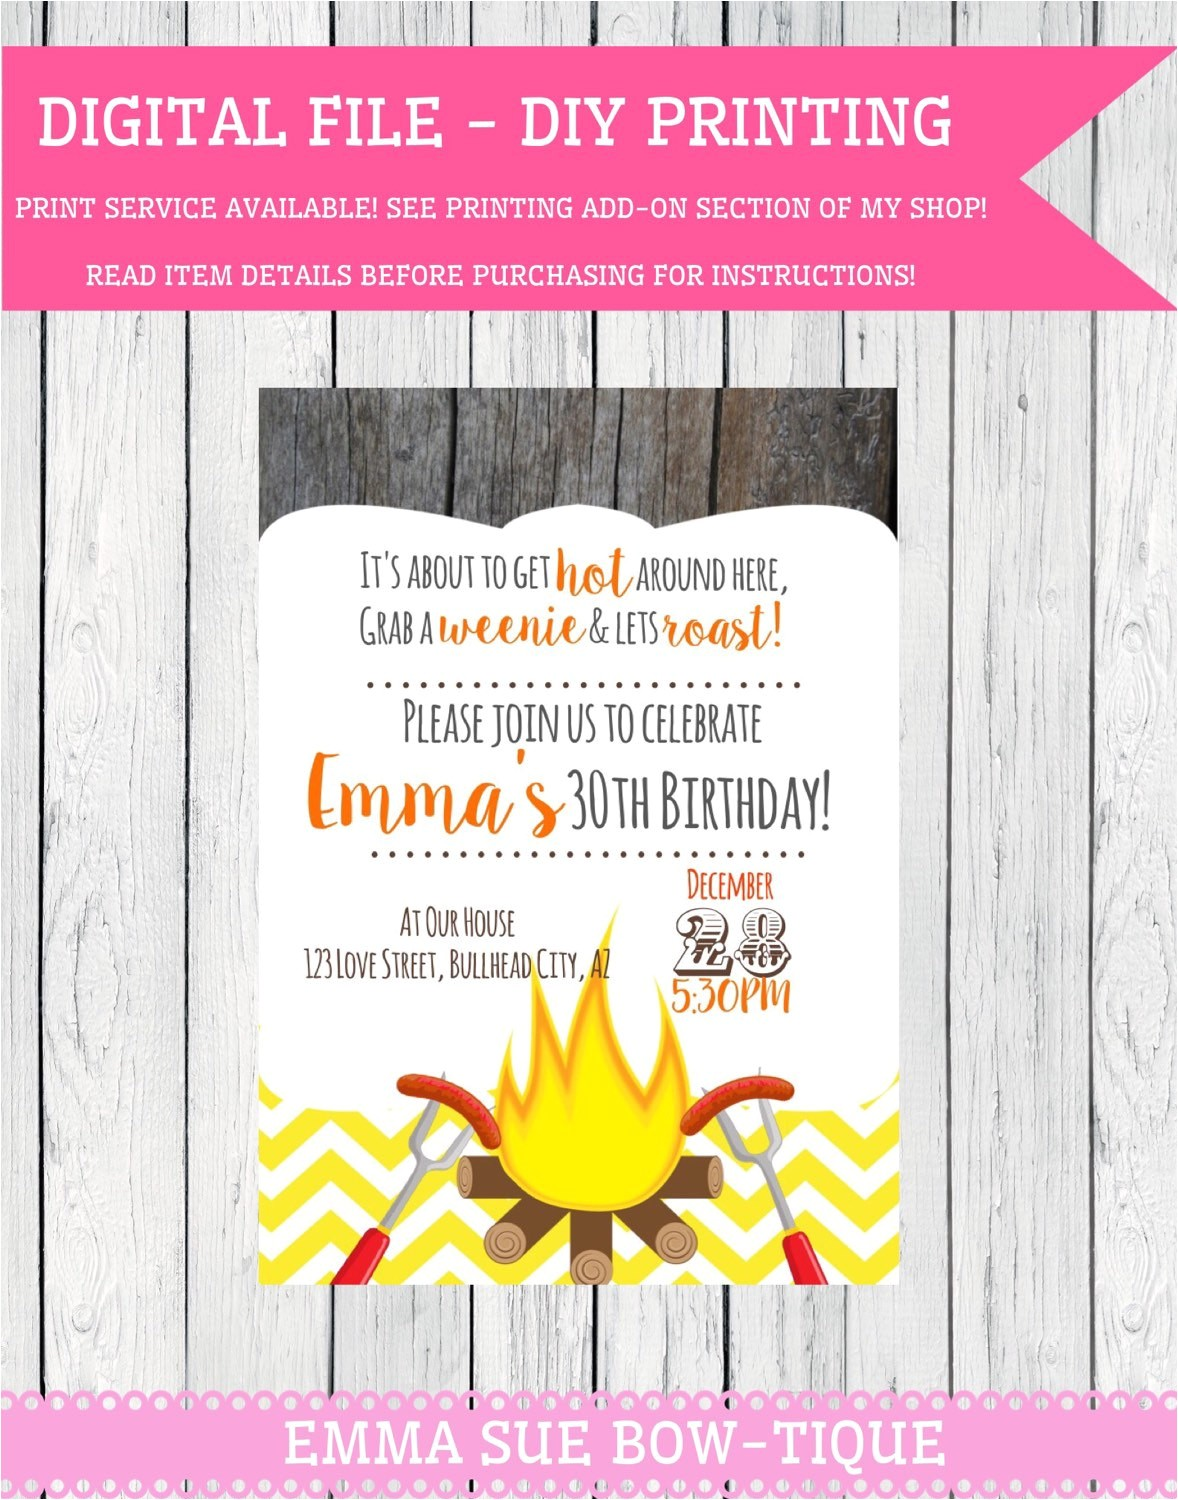 weenie roast personalized birthday